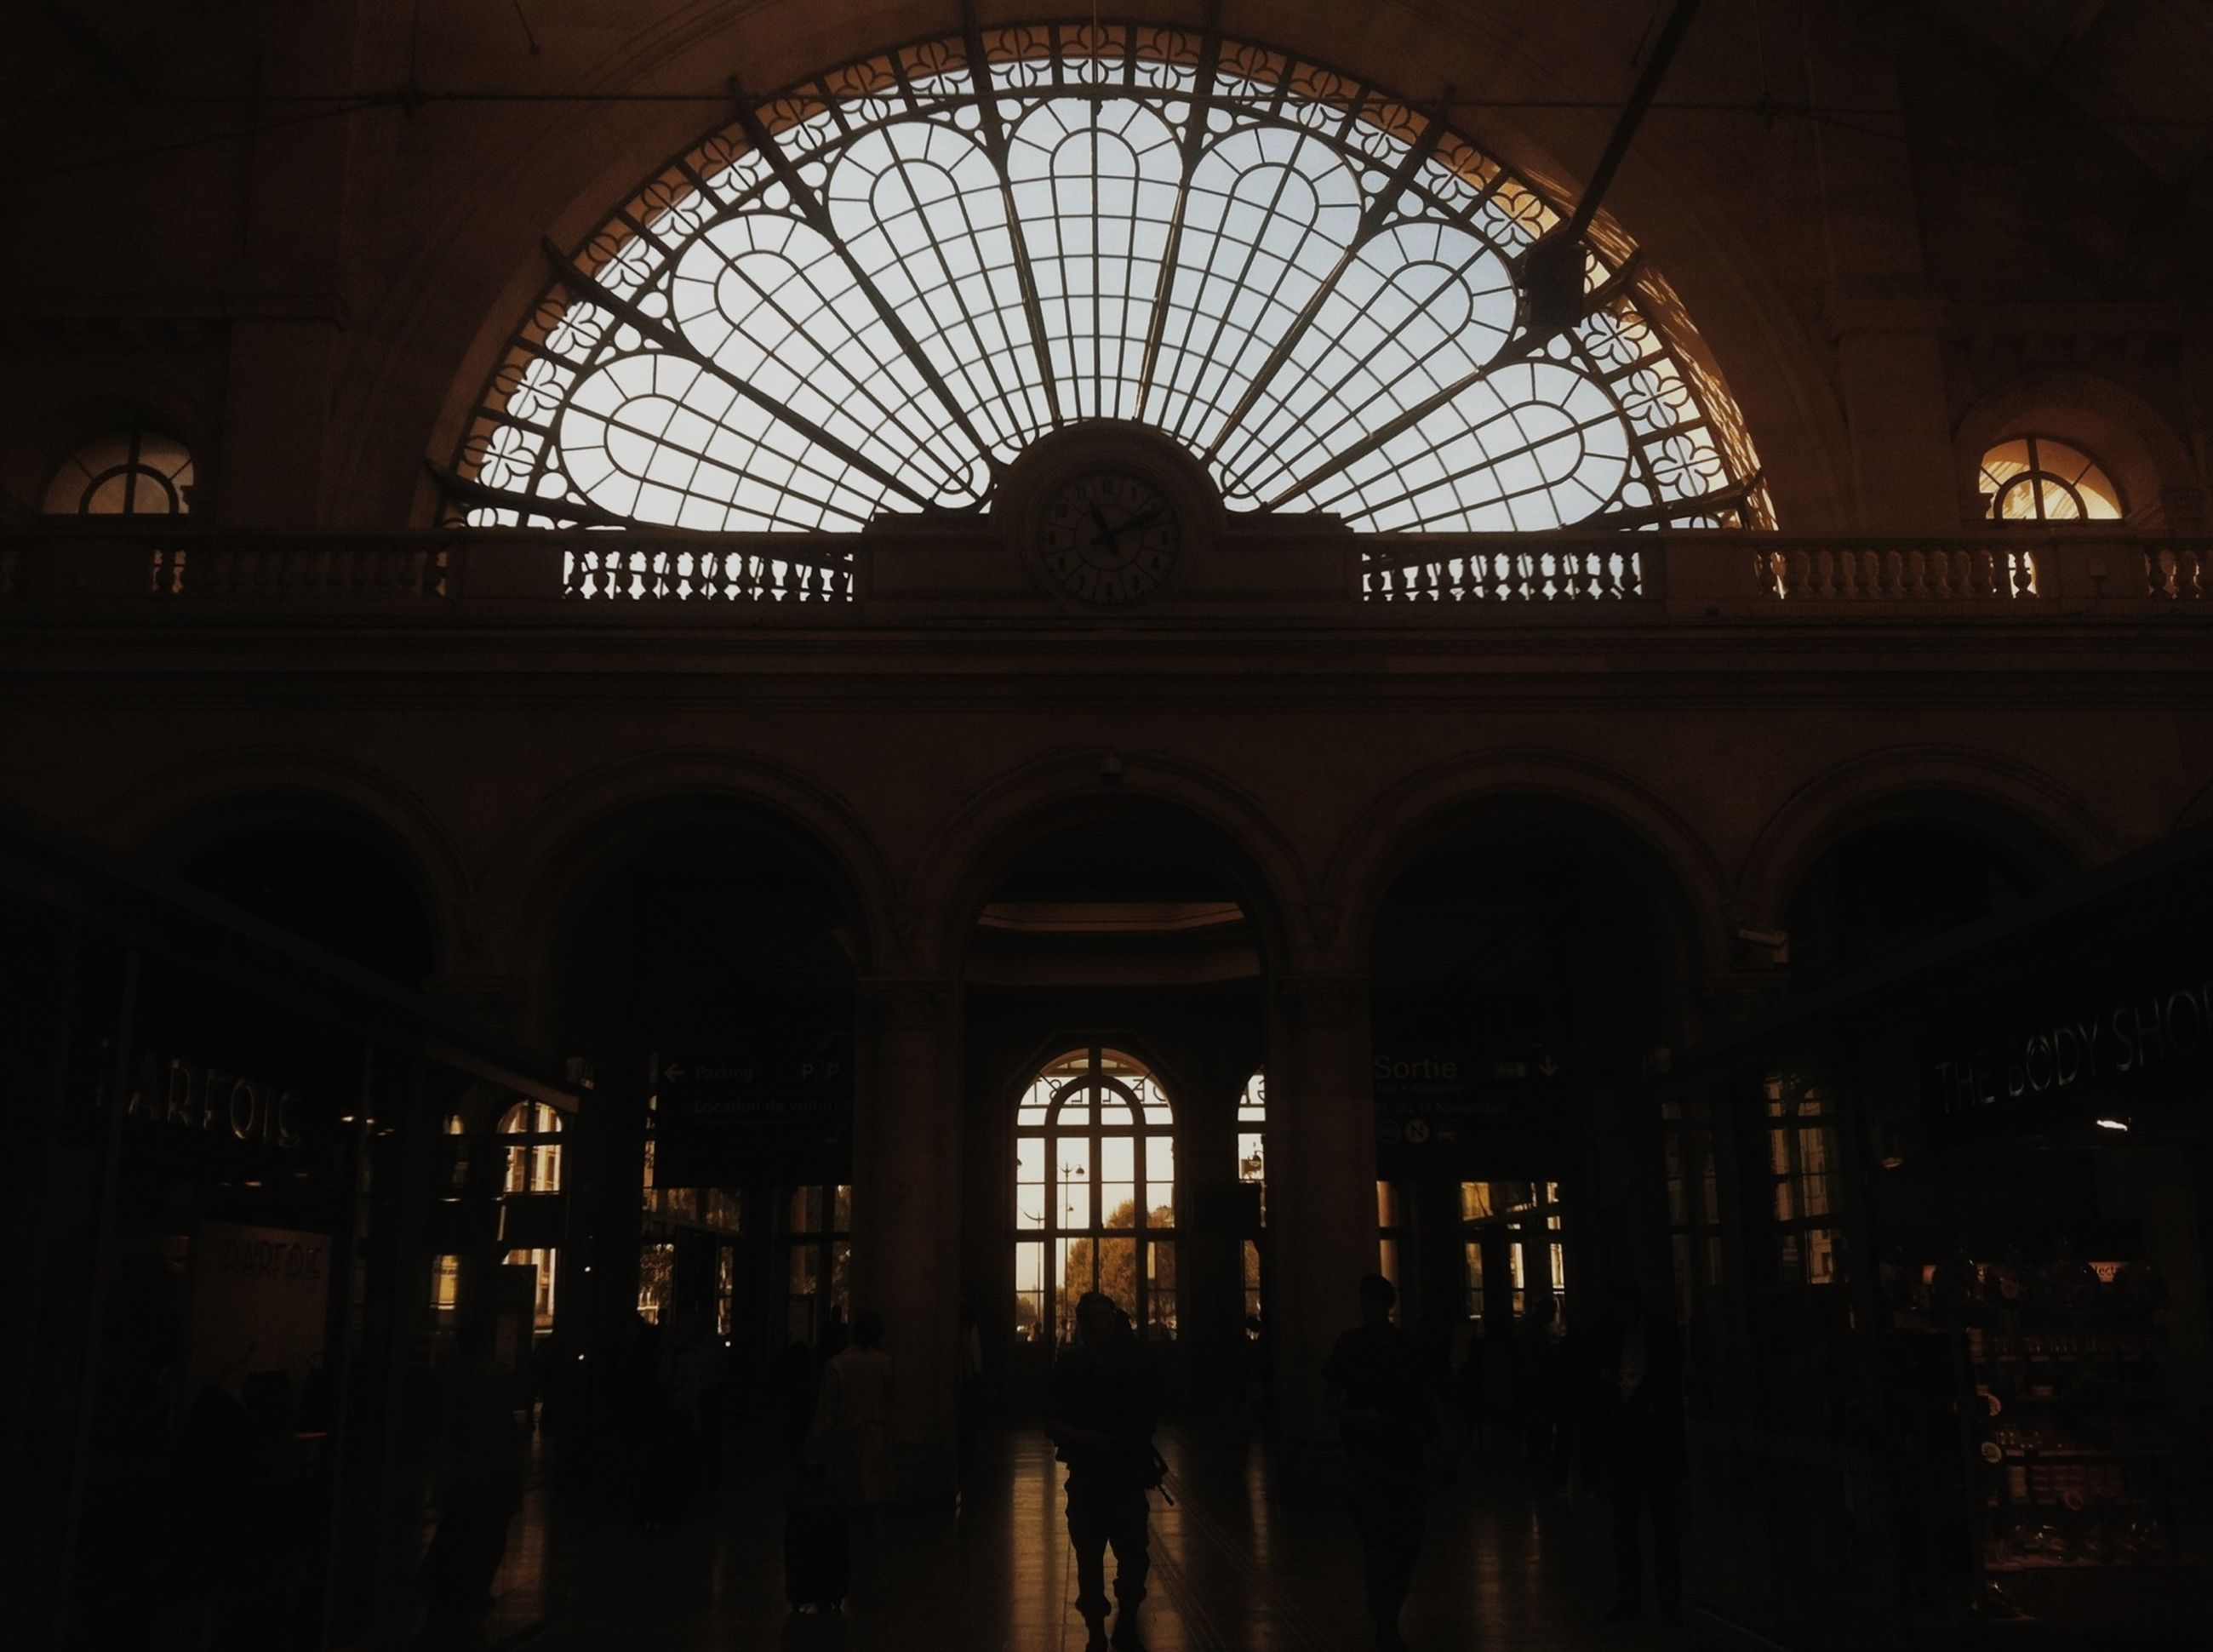 indoors, architecture, arch, built structure, window, ceiling, interior, clock, glass - material, low angle view, railroad station, time, history, building, travel, day, skylight, incidental people, travel destinations